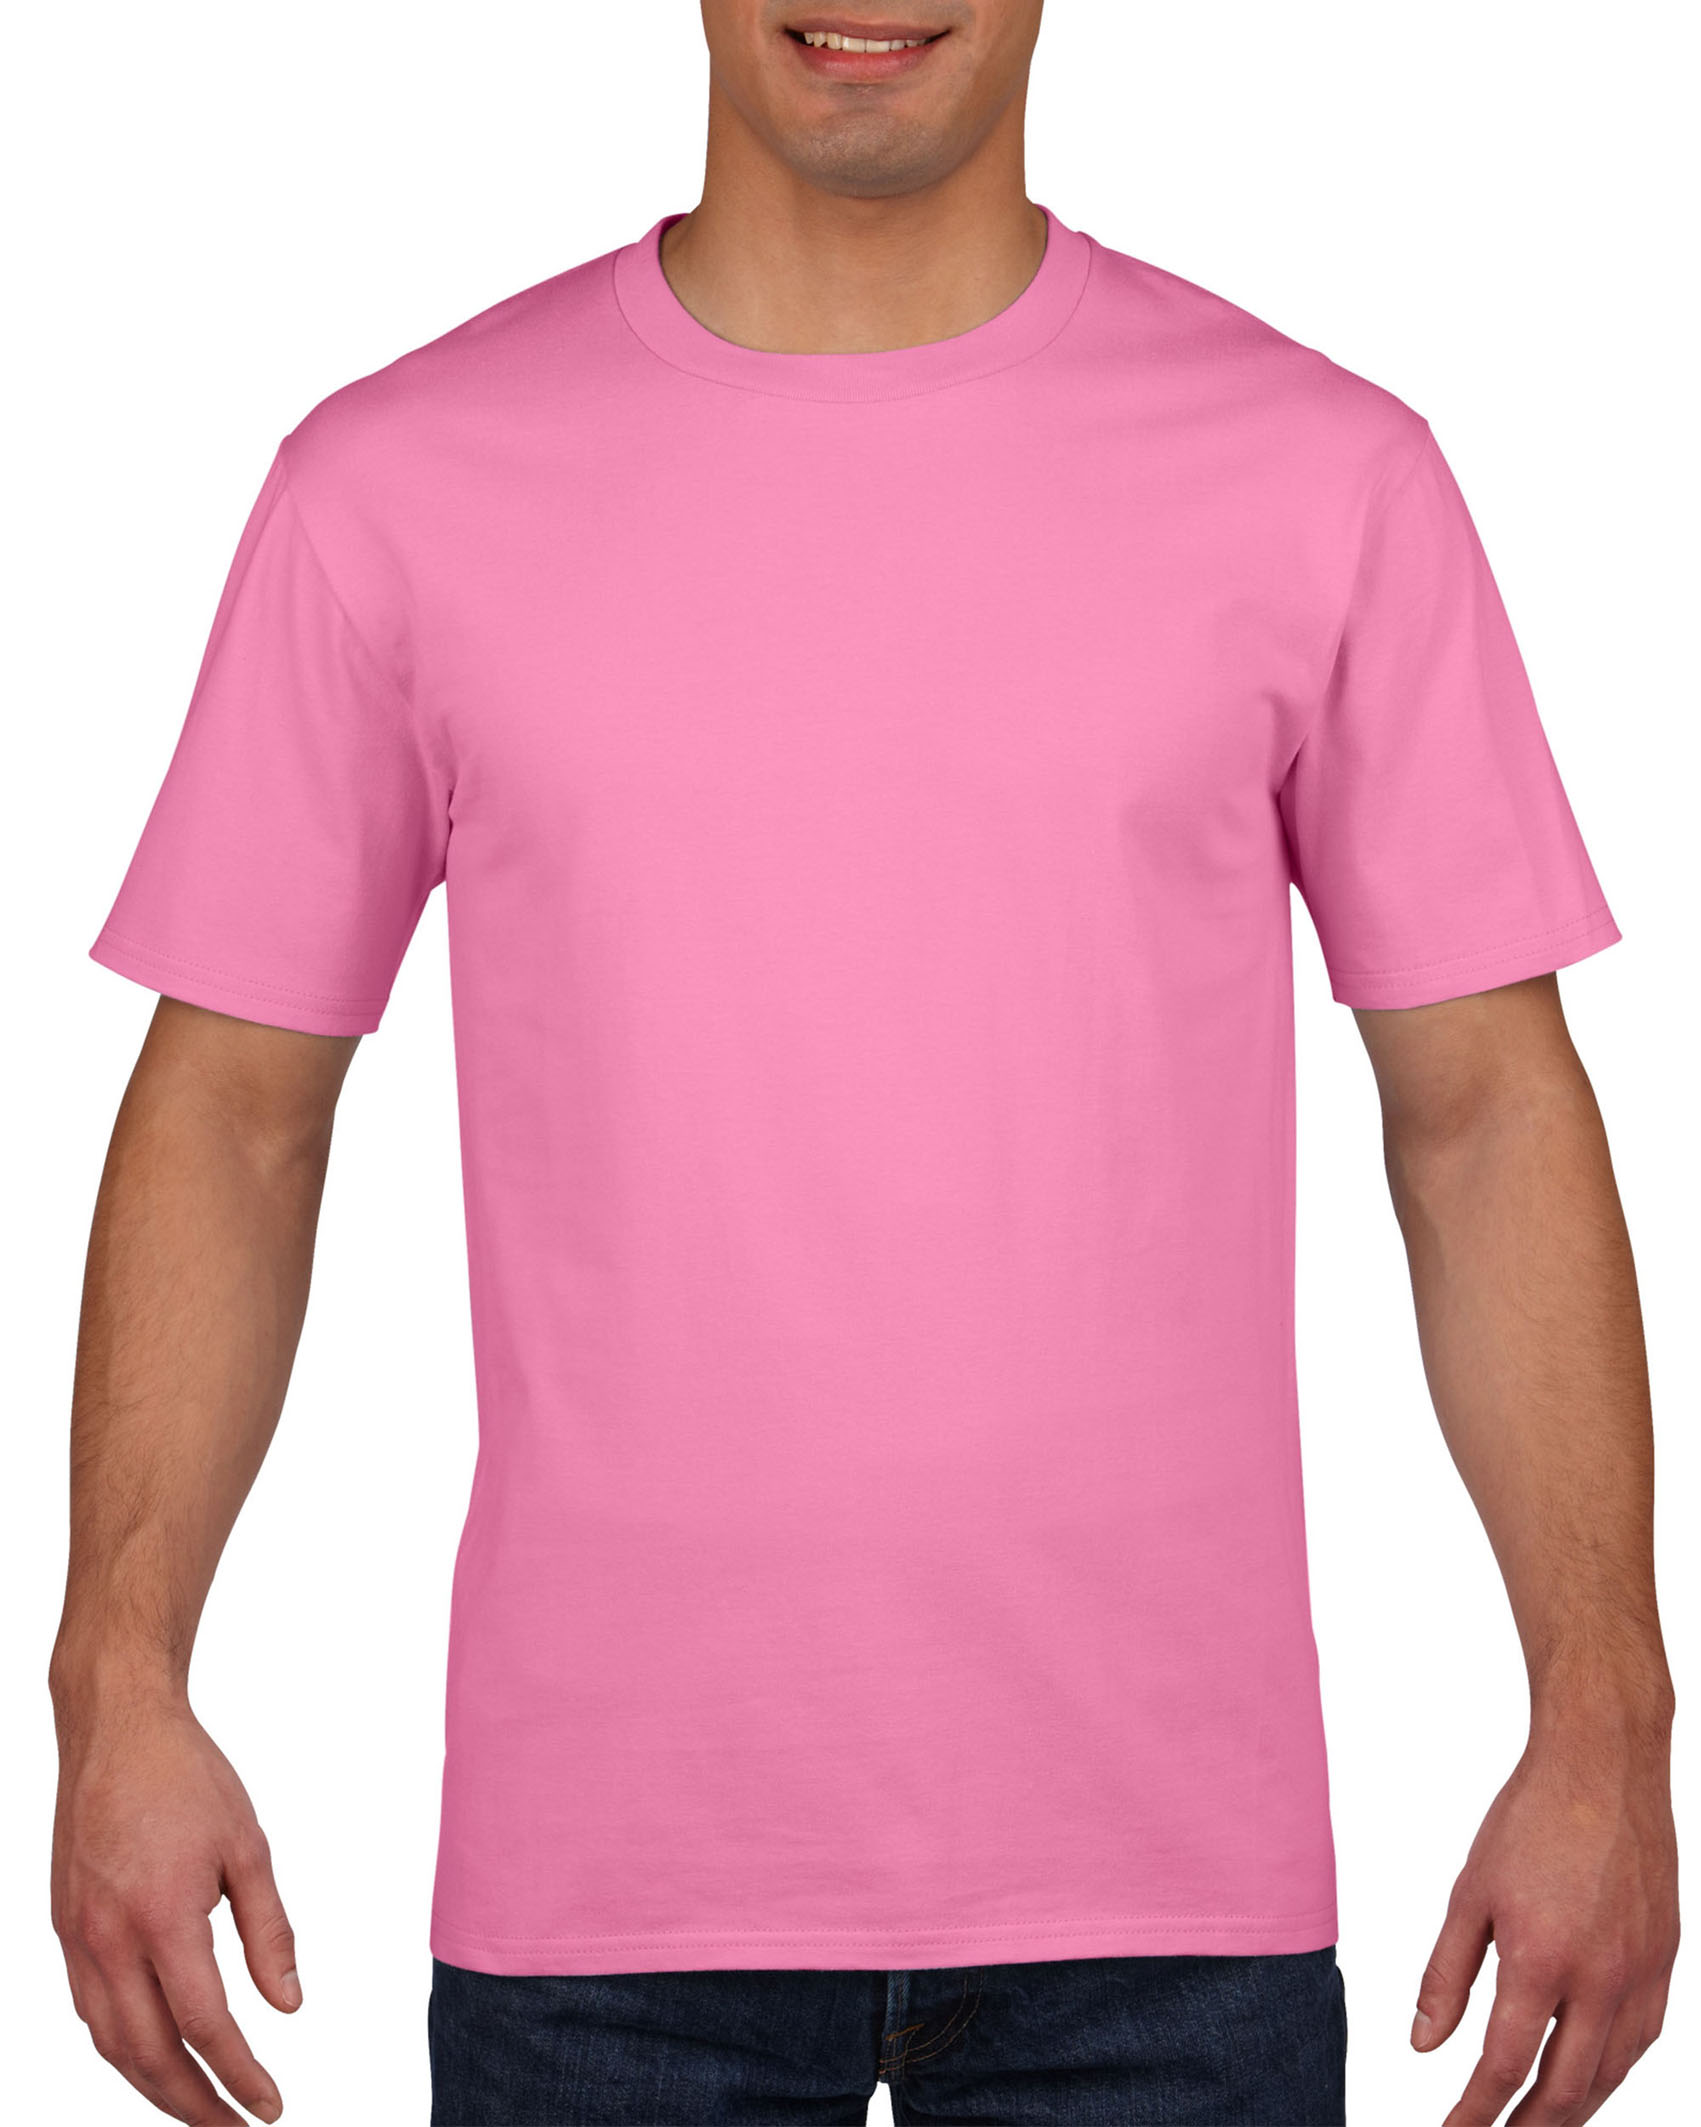 Gildan T-shirt Premium Cotton for him